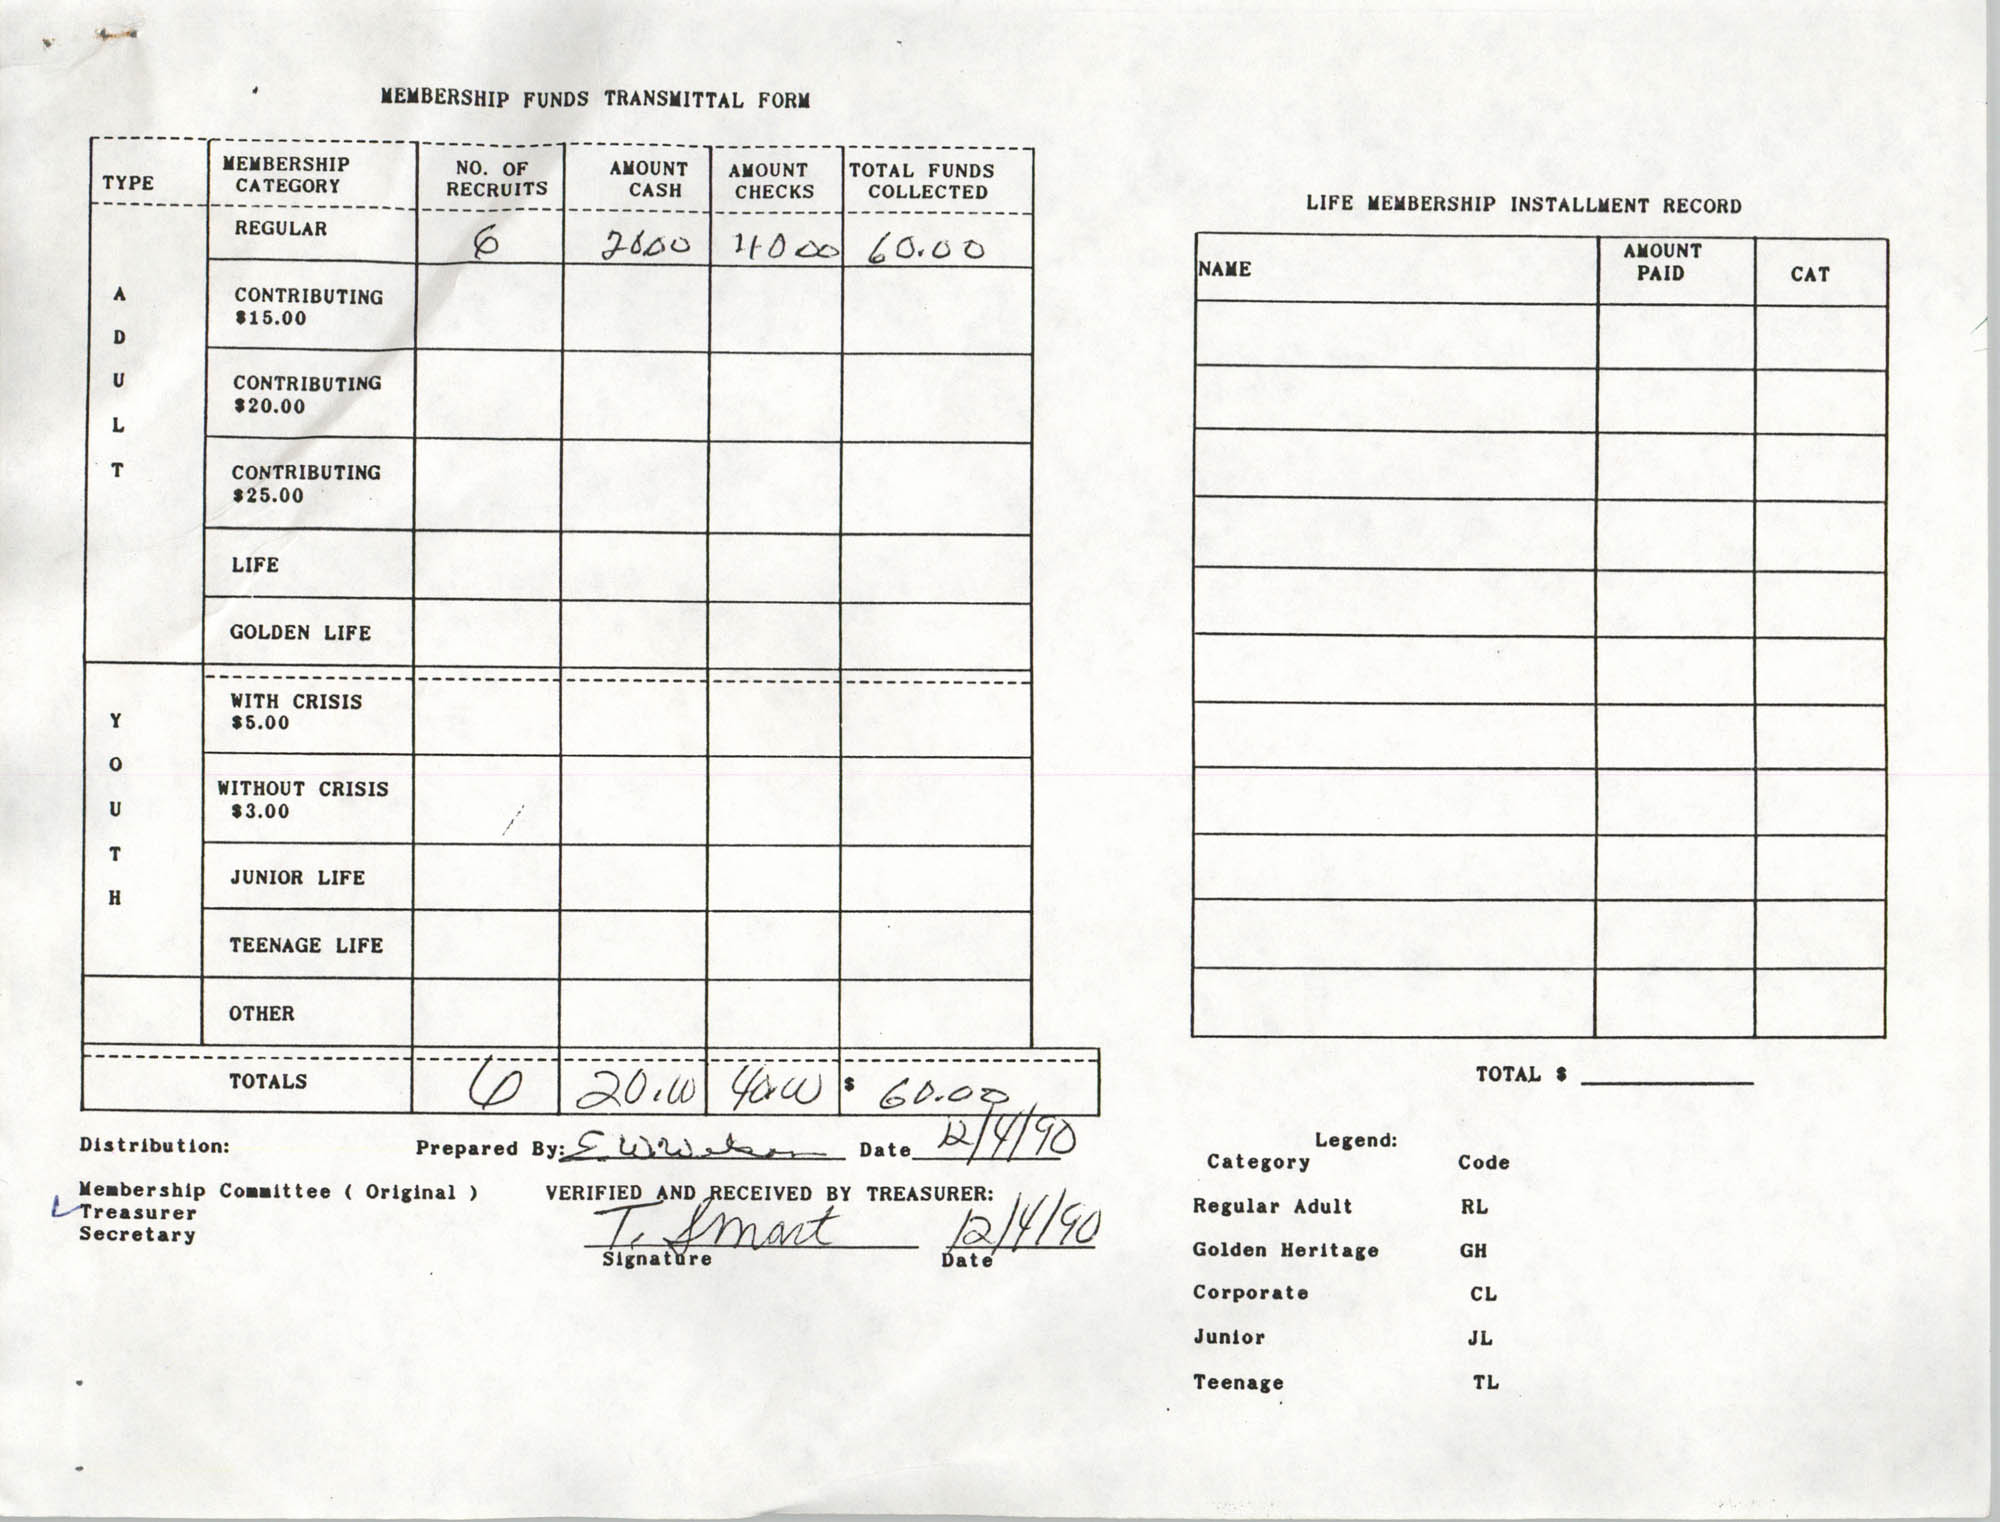 Charleston Branch of the NAACP Funds Transmittal Forms, December 1990, Page 1